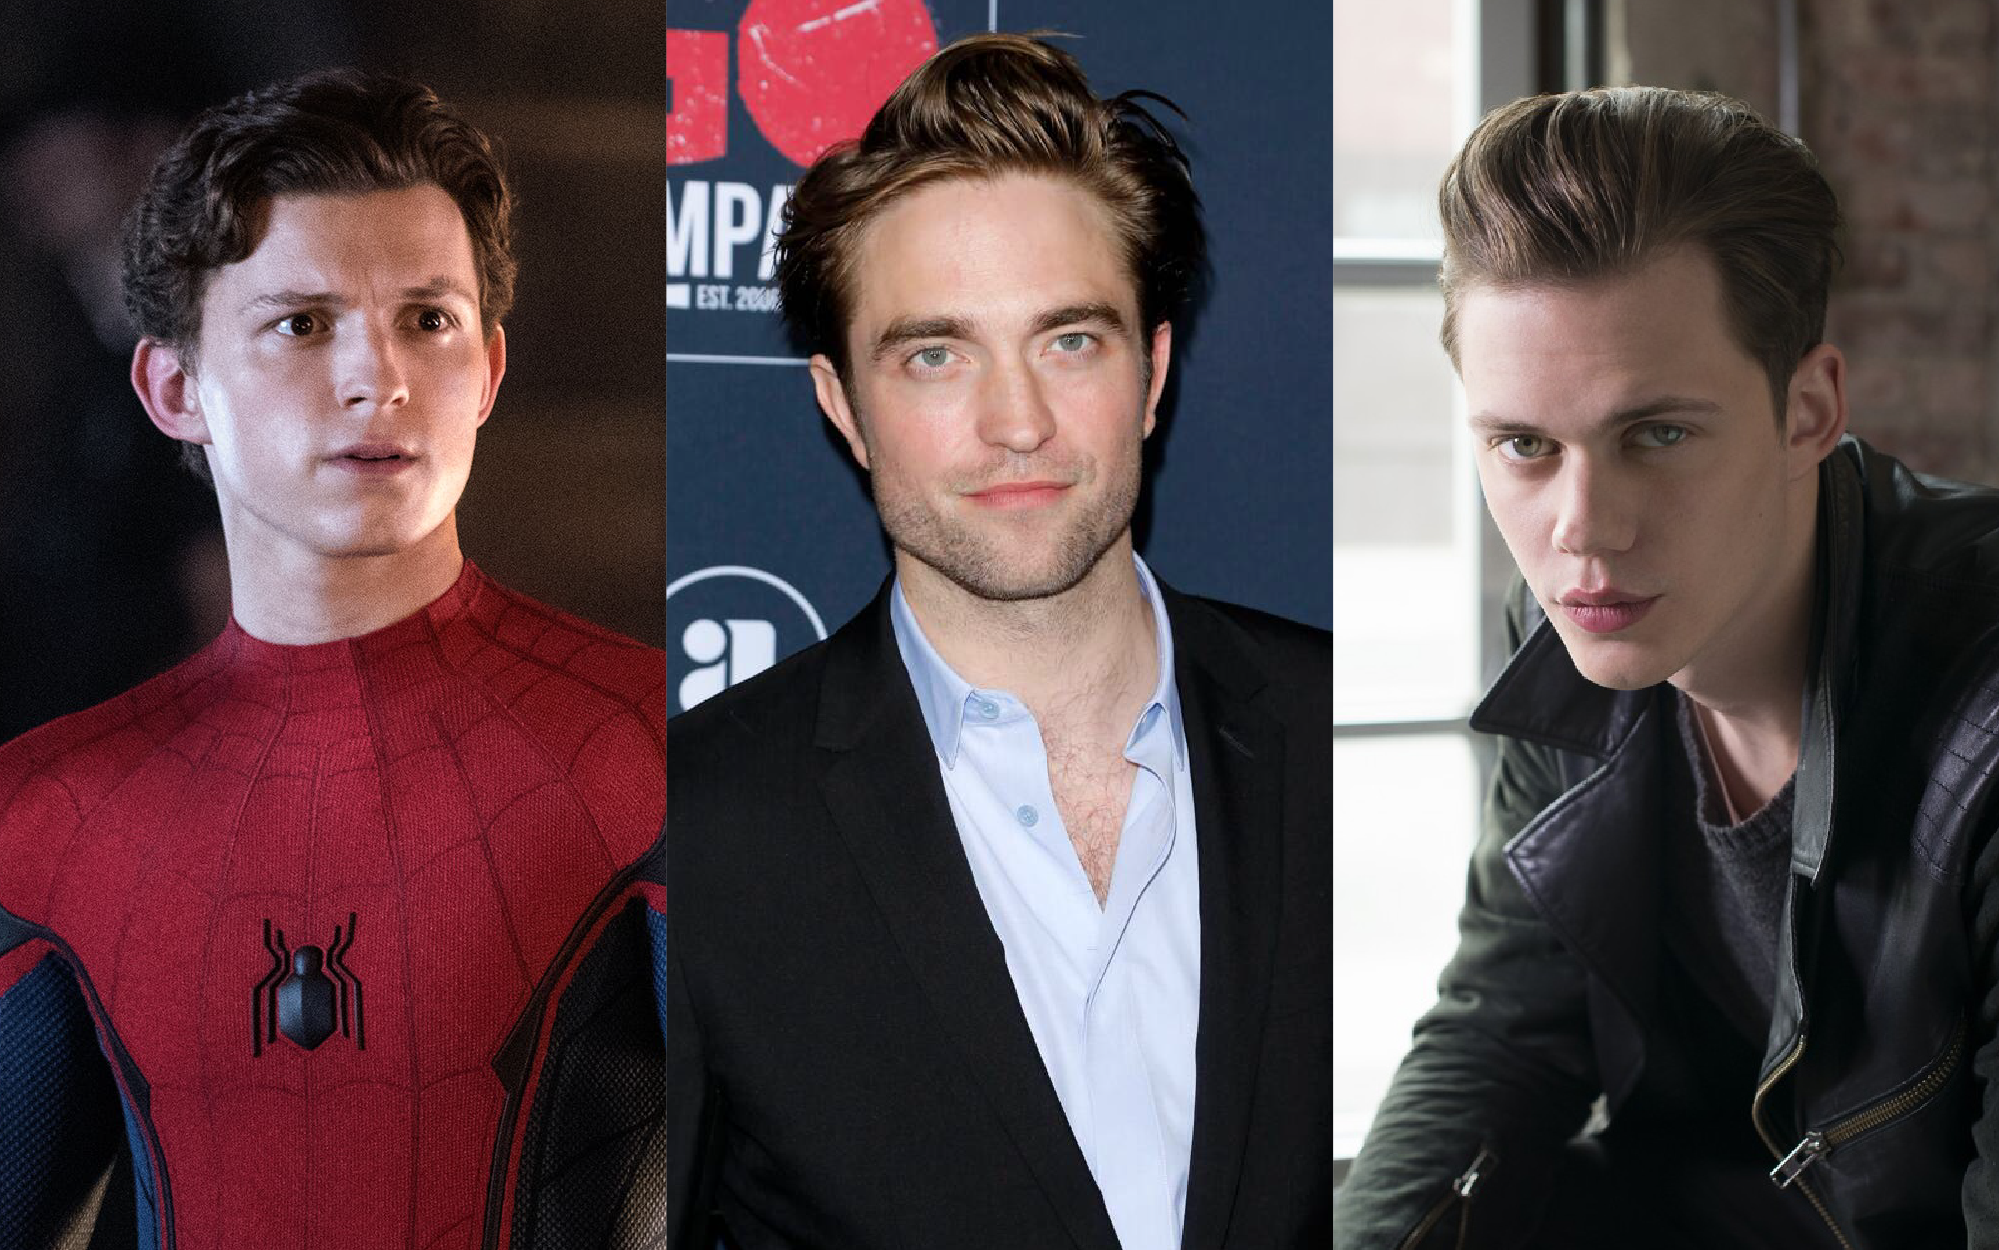 ''Xịt máu mũi'' trước tin bộ 3 Tom Holland - Robert Pattinson - Bill Skarsgård kết hợp ở The Devil All the Time